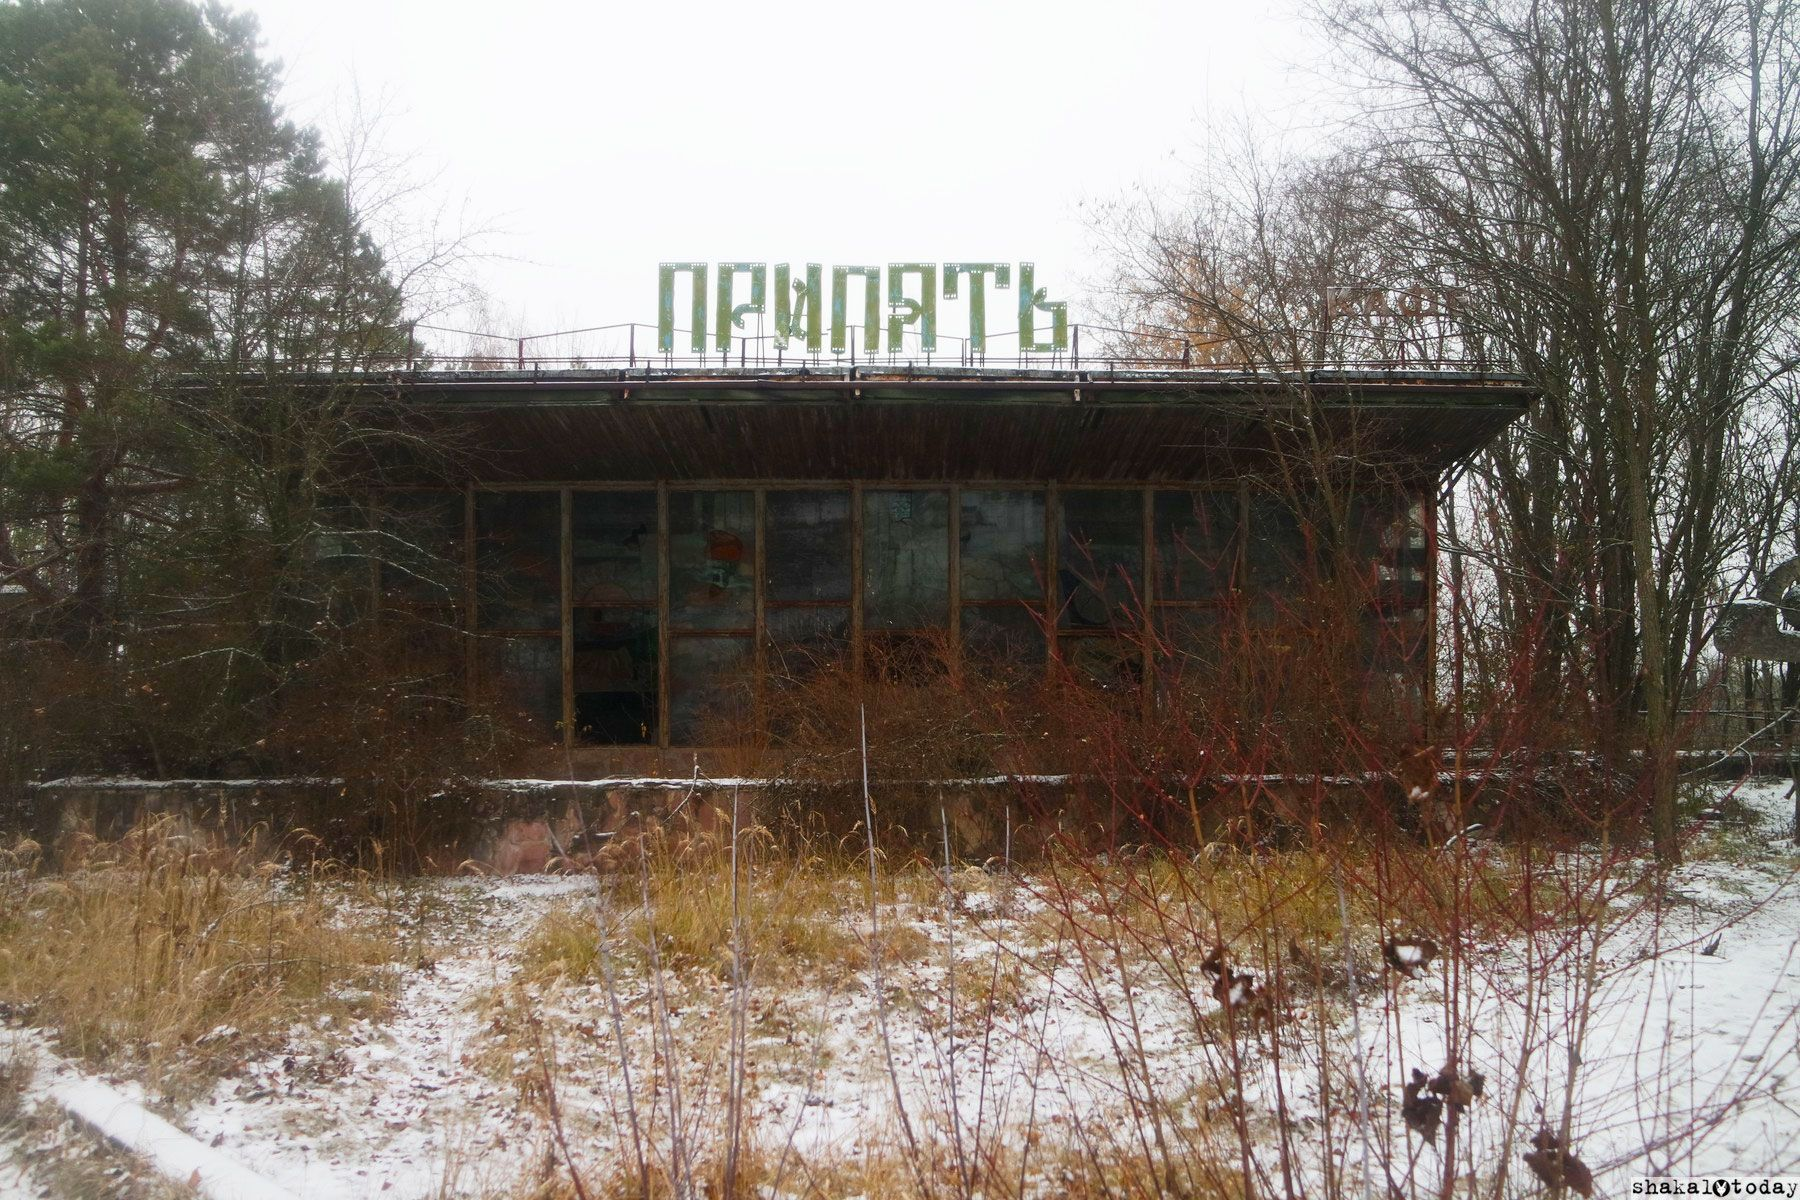 Shakal-Today-Pripyat-0047.jpg